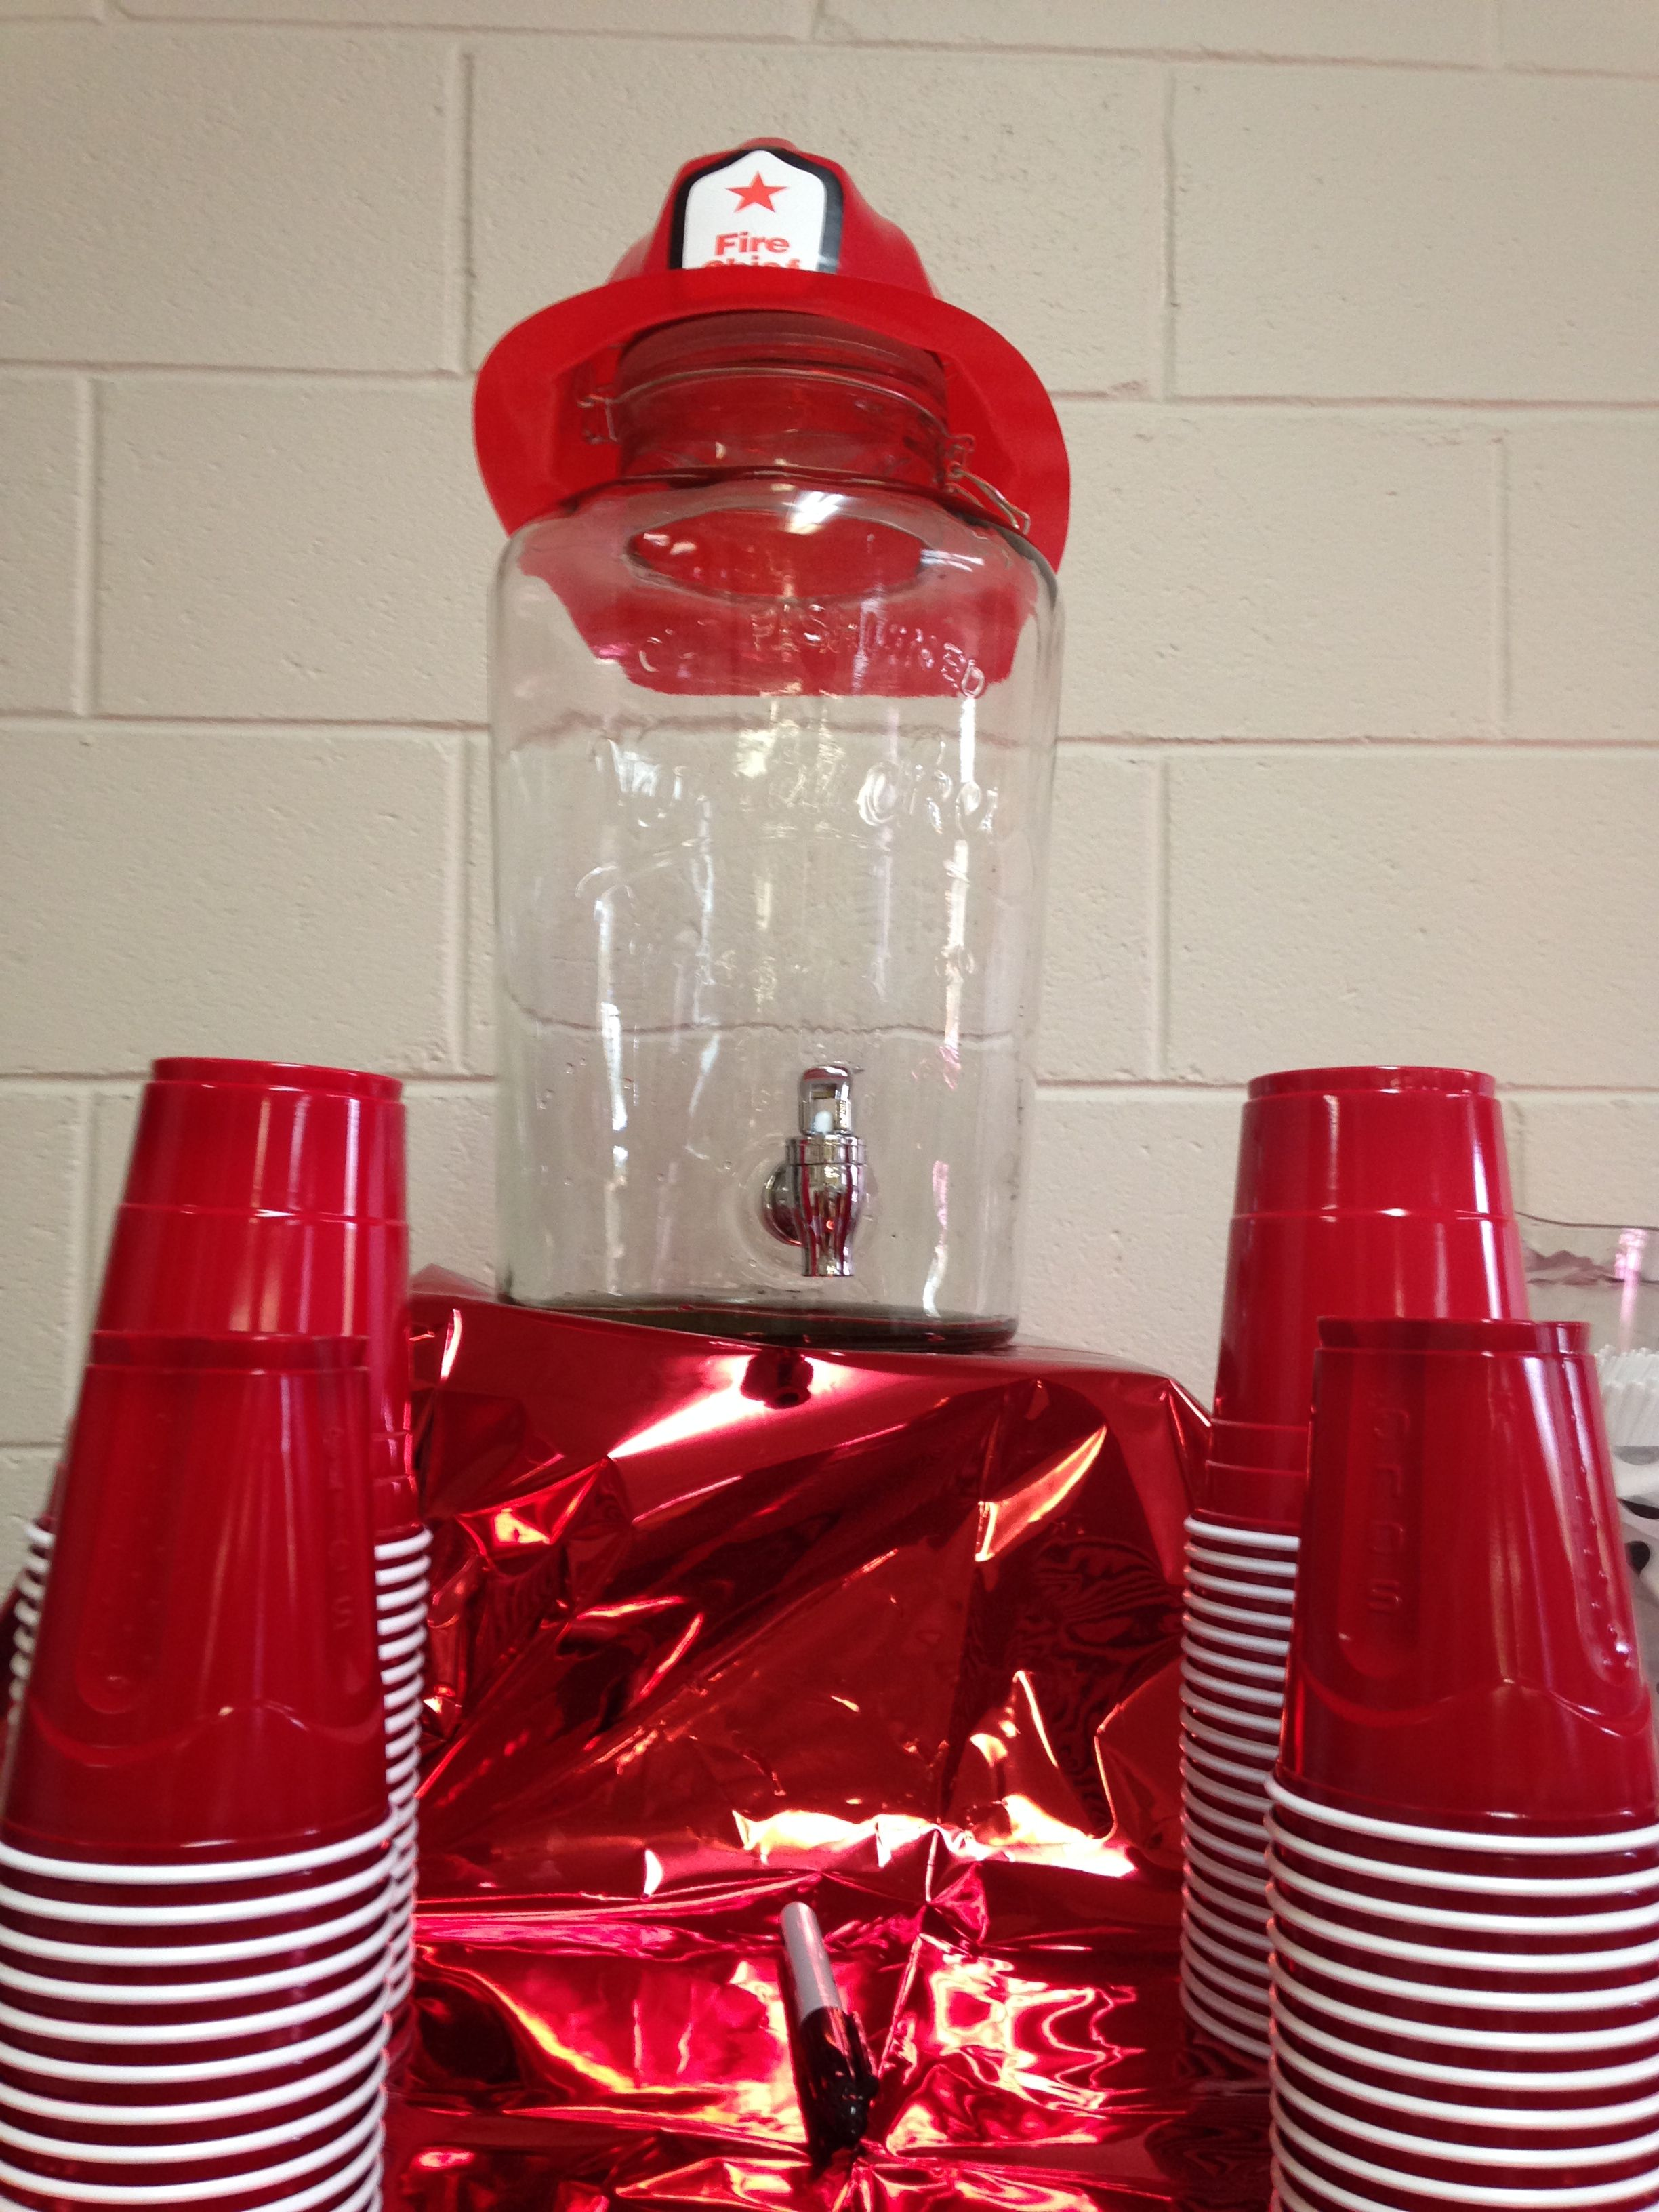 Fireman party drink dispenser covered with for what and